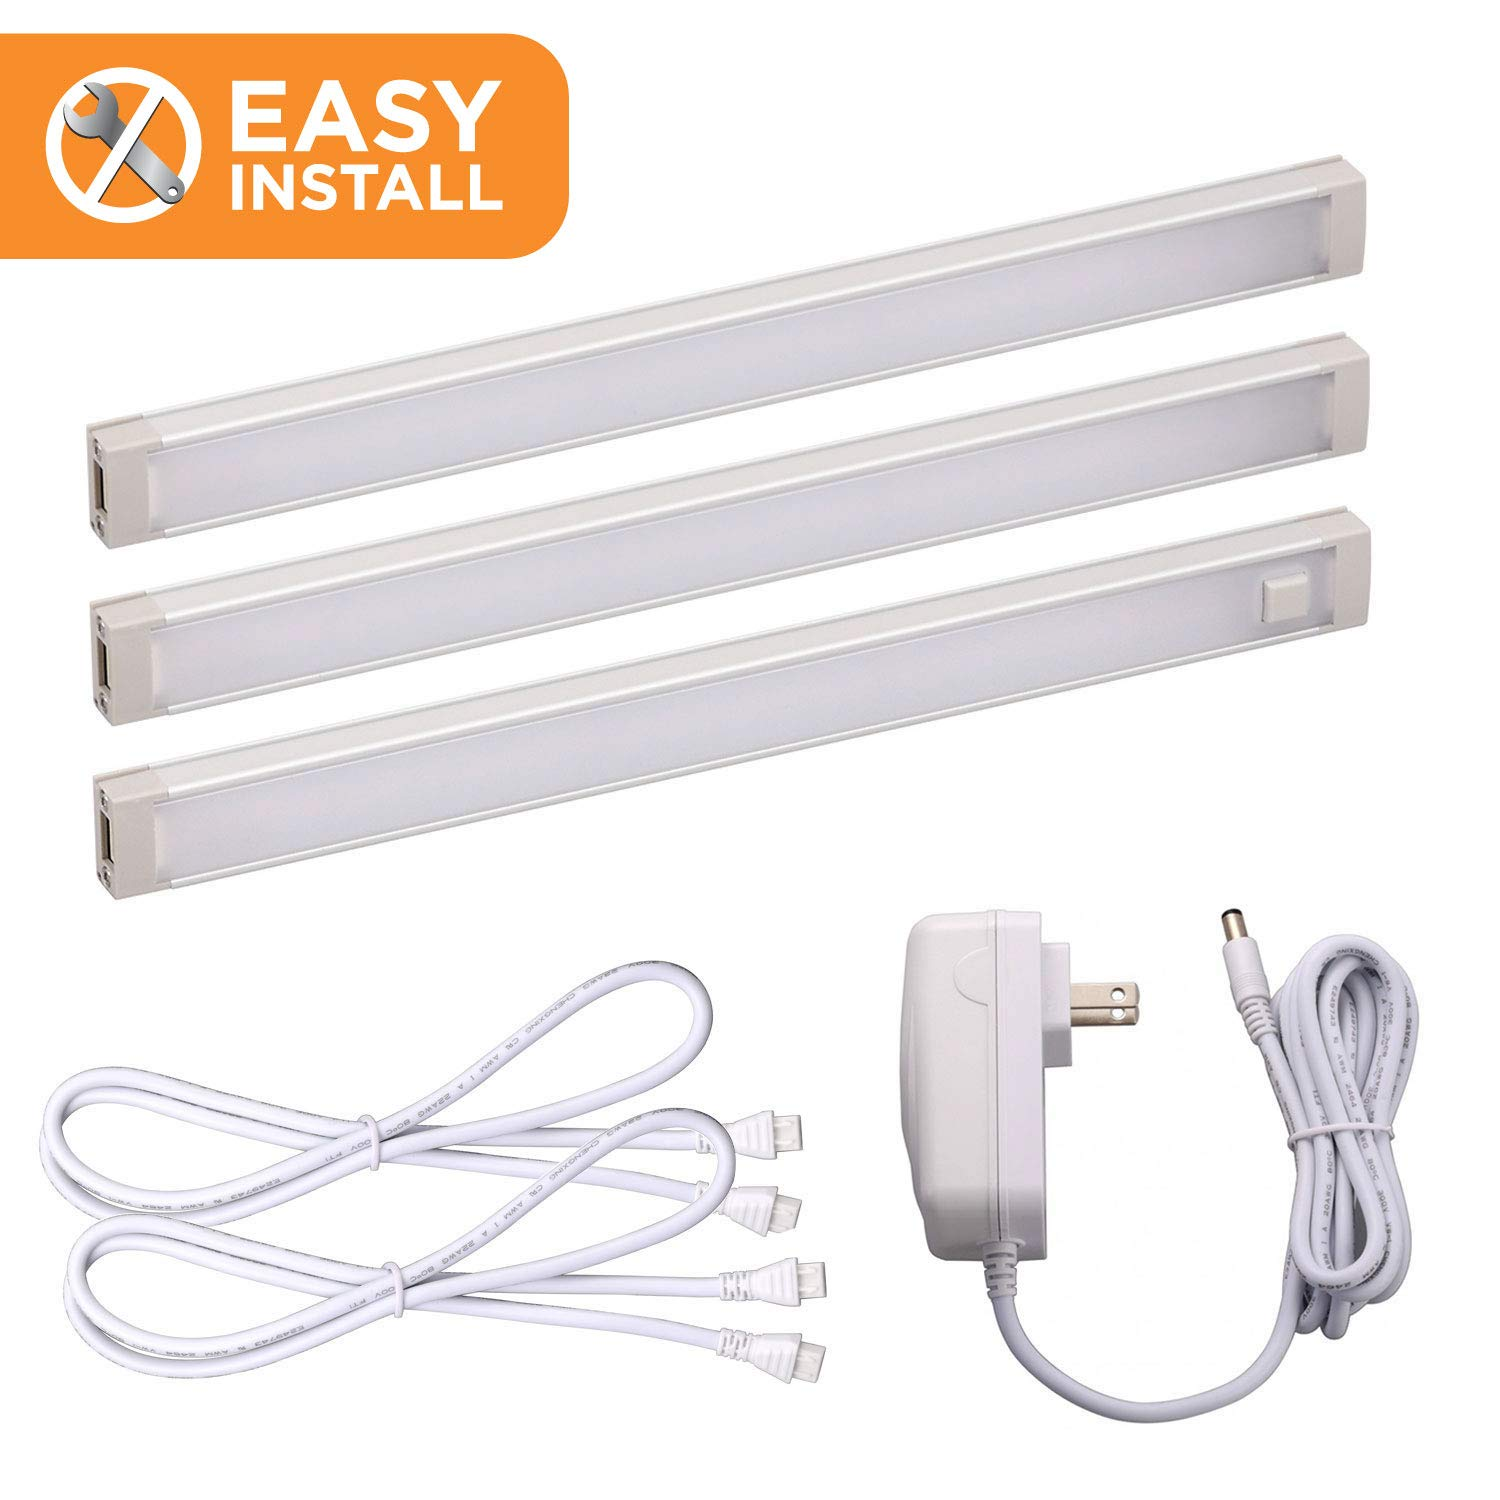 Black+Decker LED Under Cabinet Lighting Kit, 3-Bars, 9 Inches Each, DIY Tool-Free Installation, Warm White, 2700K, 1080 Lumens, 15 Watts, Home Accent Lighting (LEDUC9-3WK) by Black and Decker Office Products